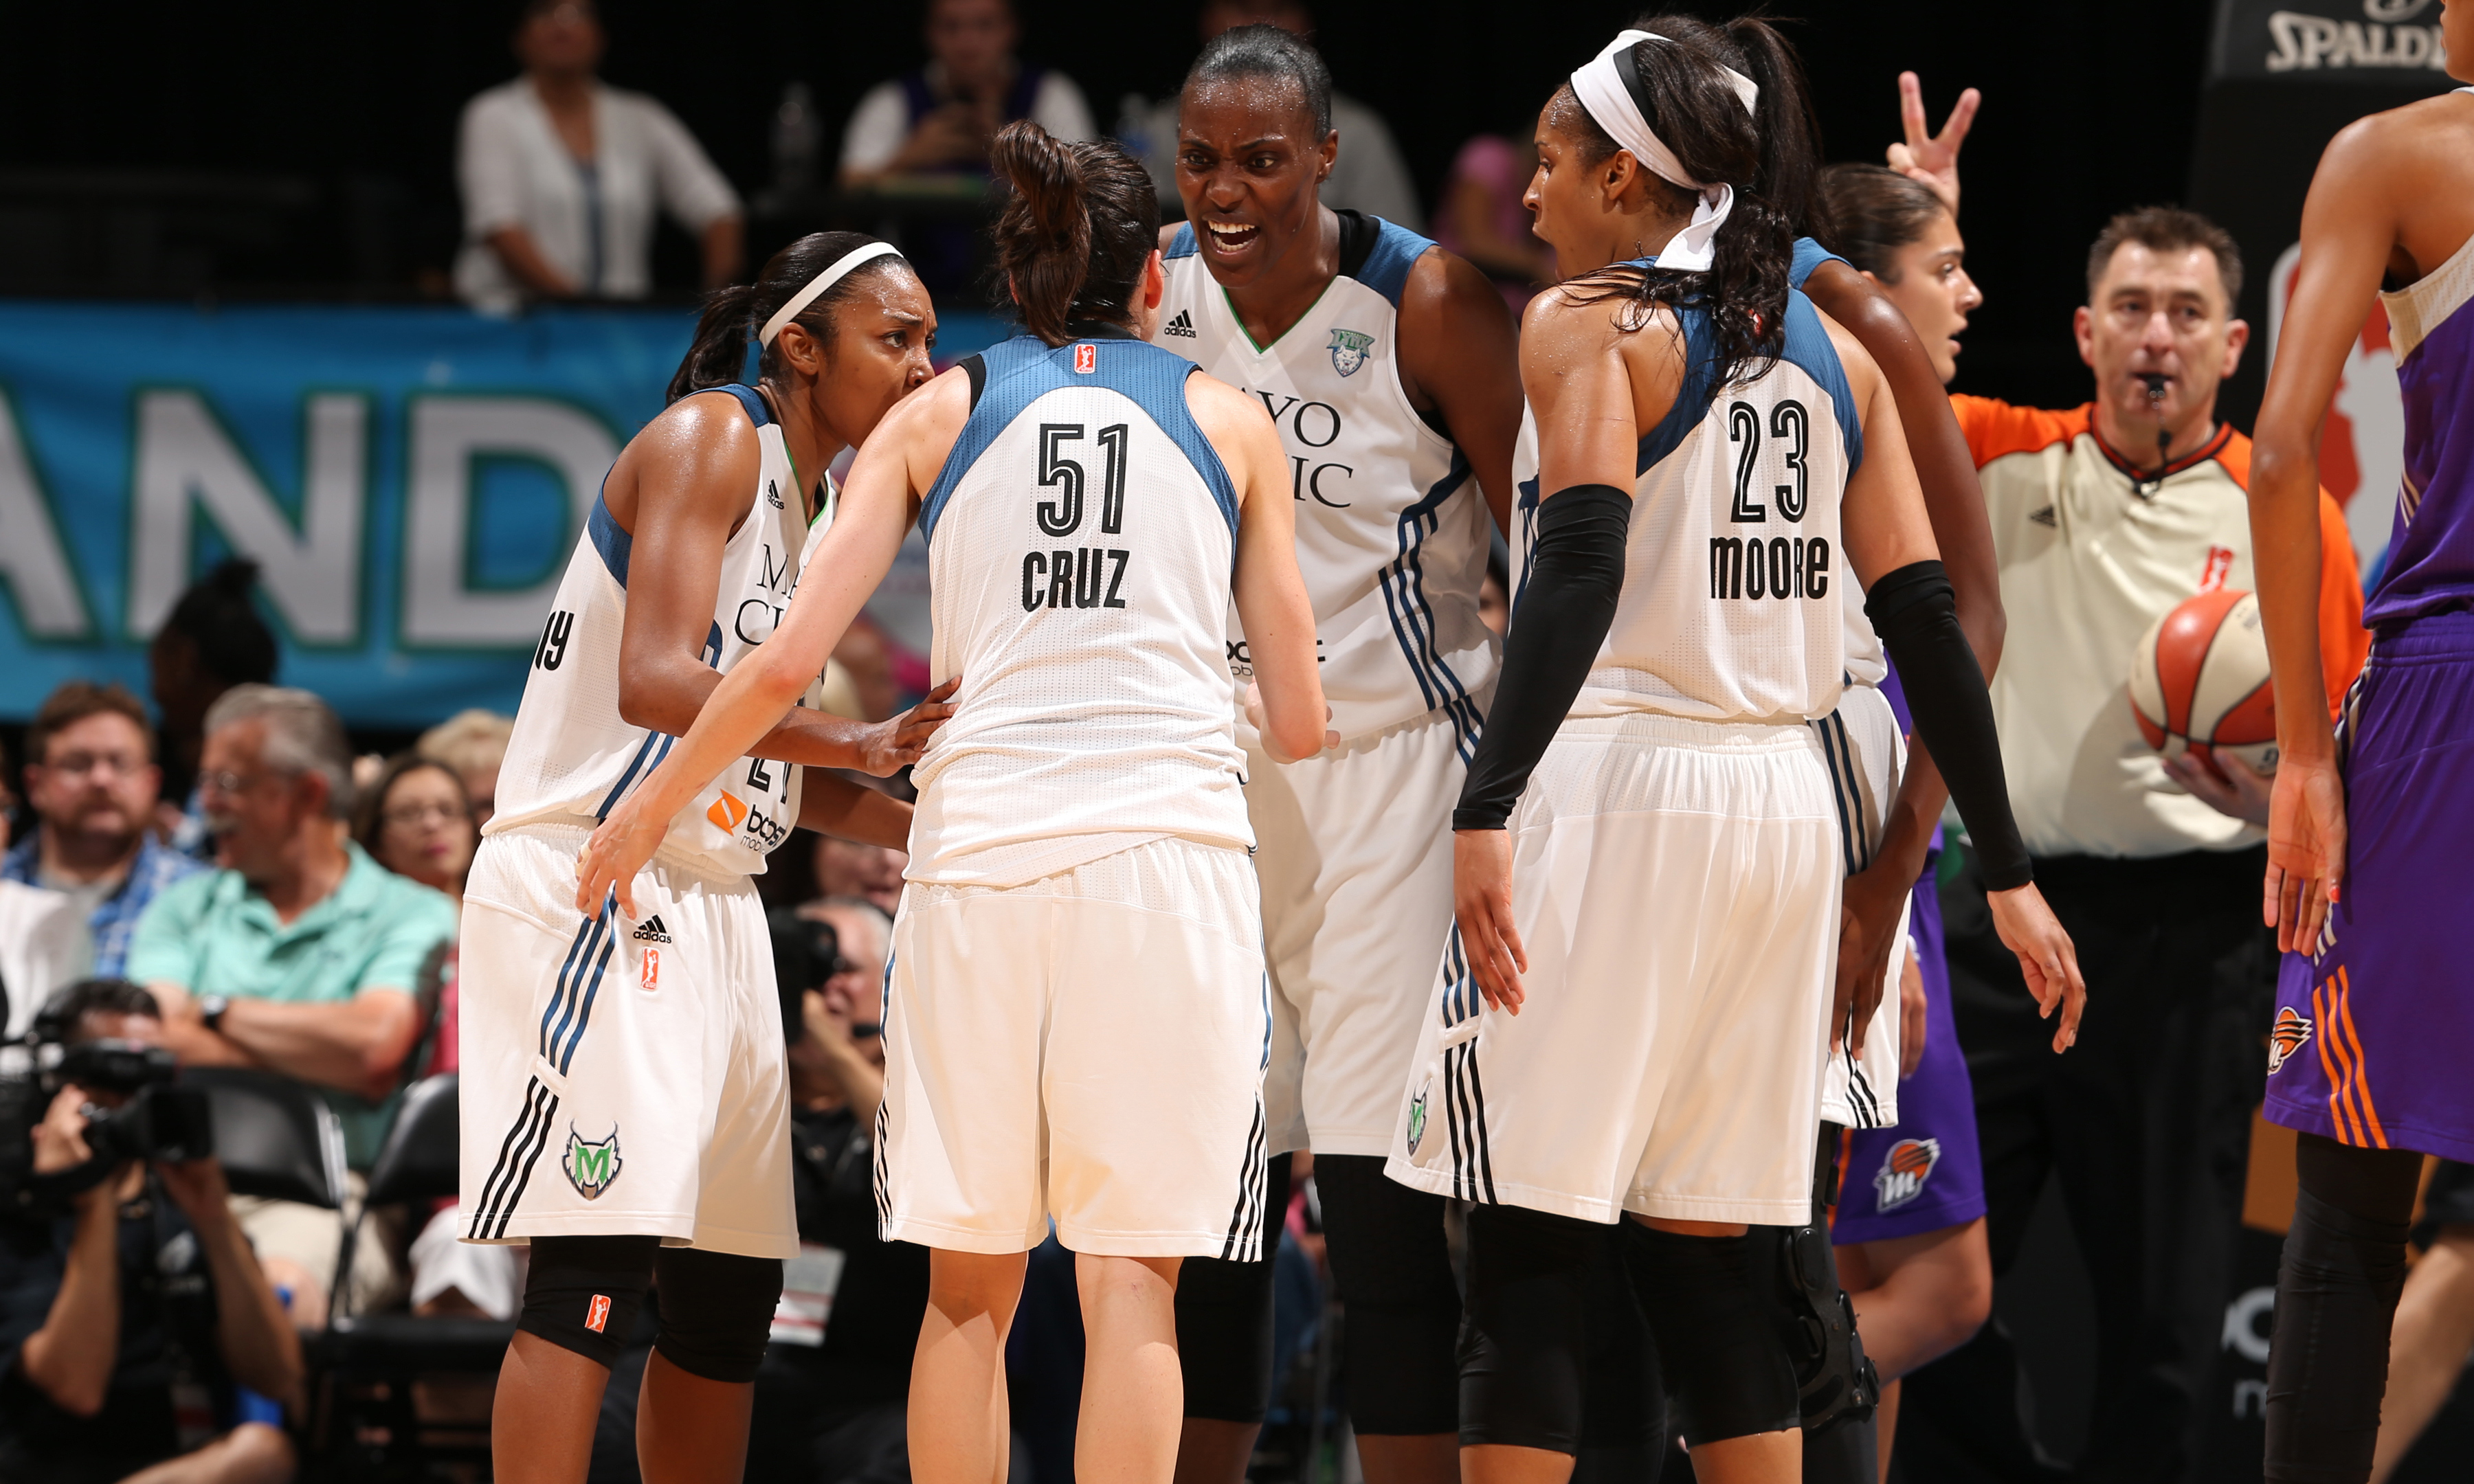 The Minnesota Lynx, despite being shorthanded once again, defeated the Phoenix Mercury Sunday night 71-61, extending their lead iover the Mercury the Western Conference to three games with just four games left to play.